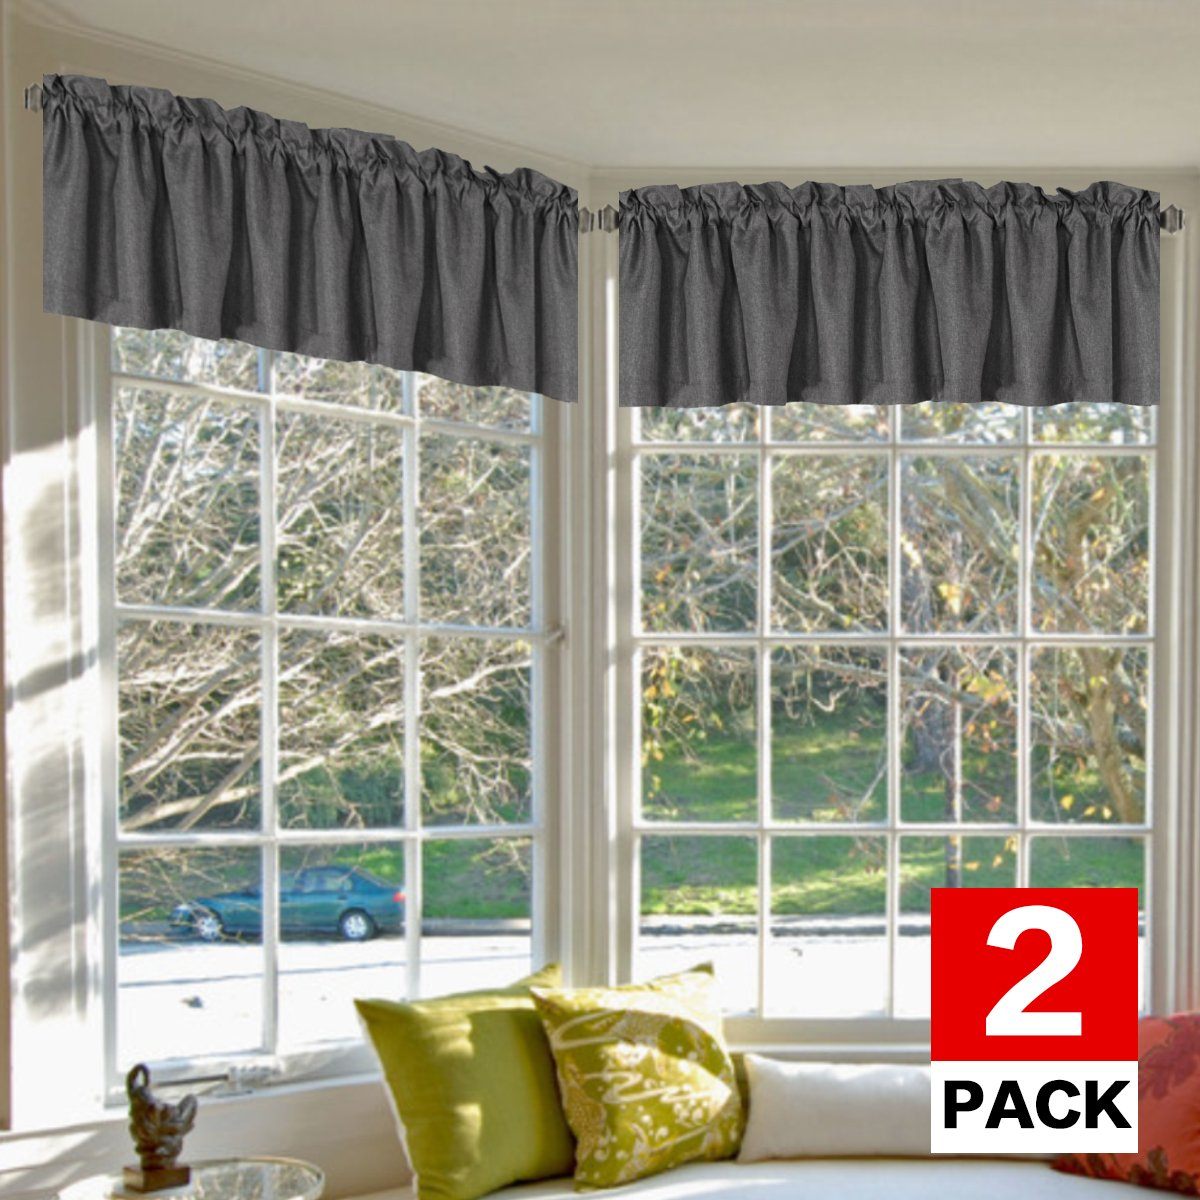 H.VERSAILTEX Privacy Protection Heavy Faux Linen Kitchen Valances for Windows Room Darkening Blackout Curtain Valances for Bedroom, Rod Pocket Top, 2 Pack, Charcoal Gray, 52 x 18 Inch